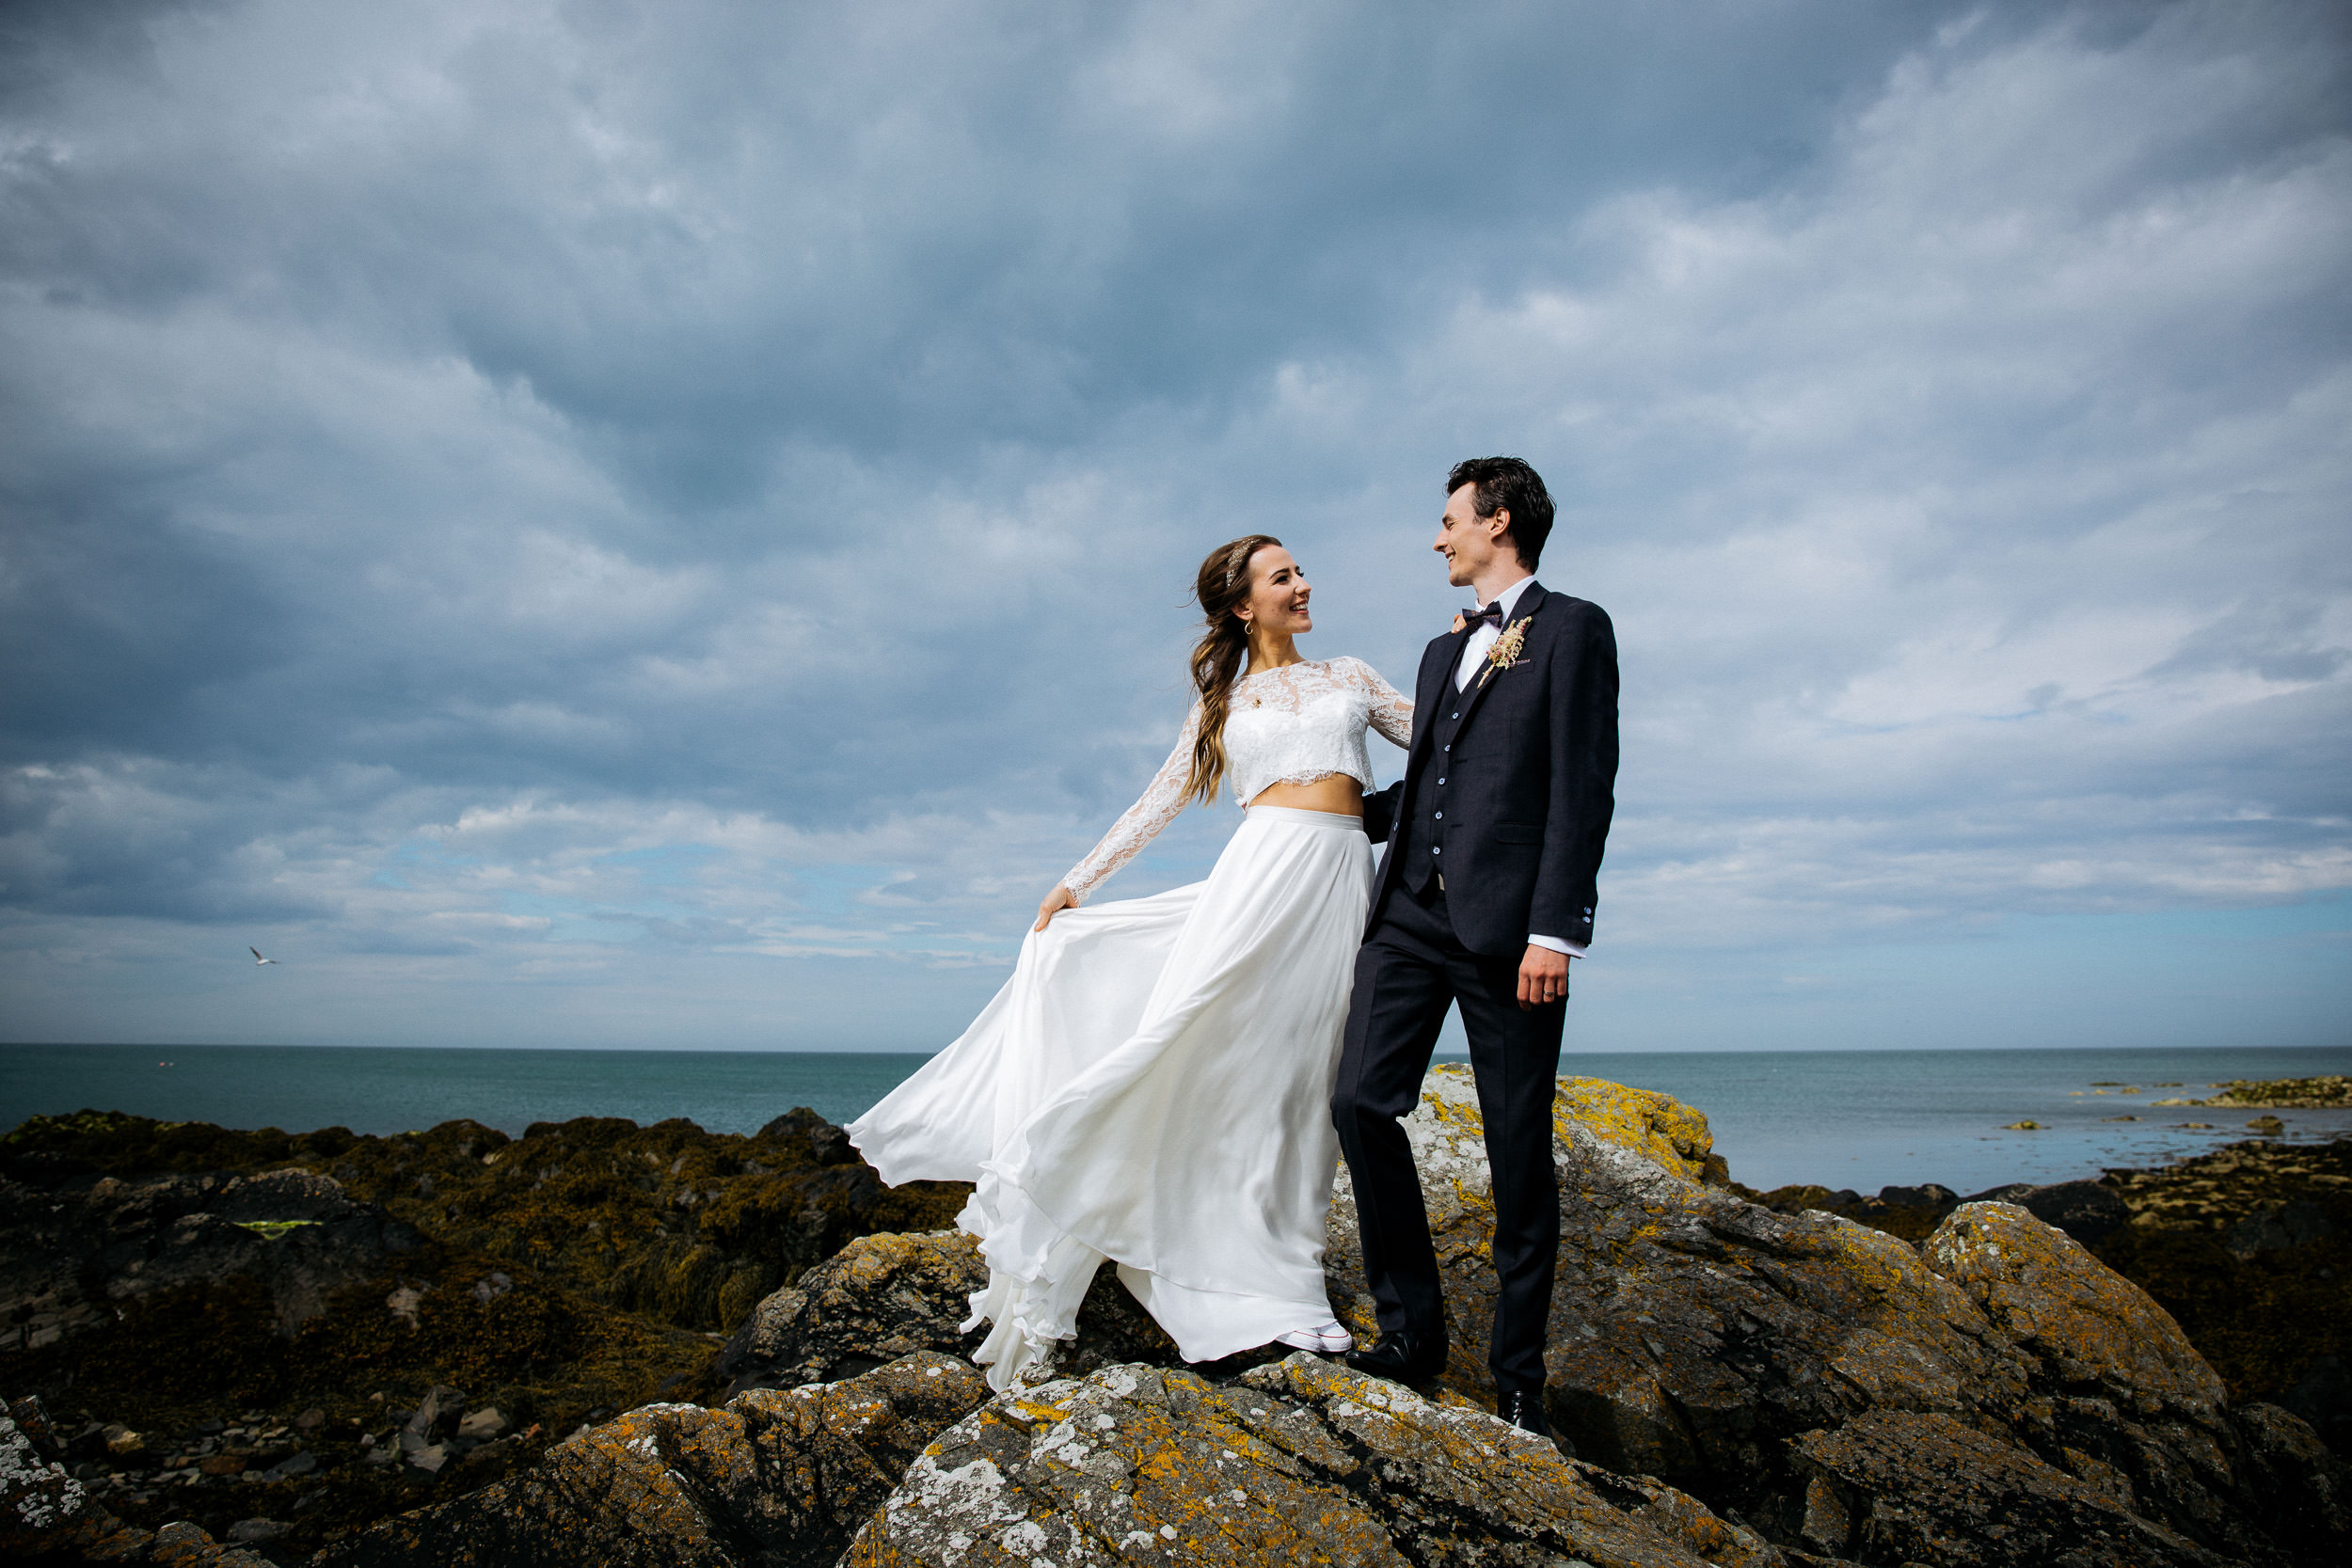 clairebyrnephotography-fun-wedding-photographer-ireland-creative-3.jpg